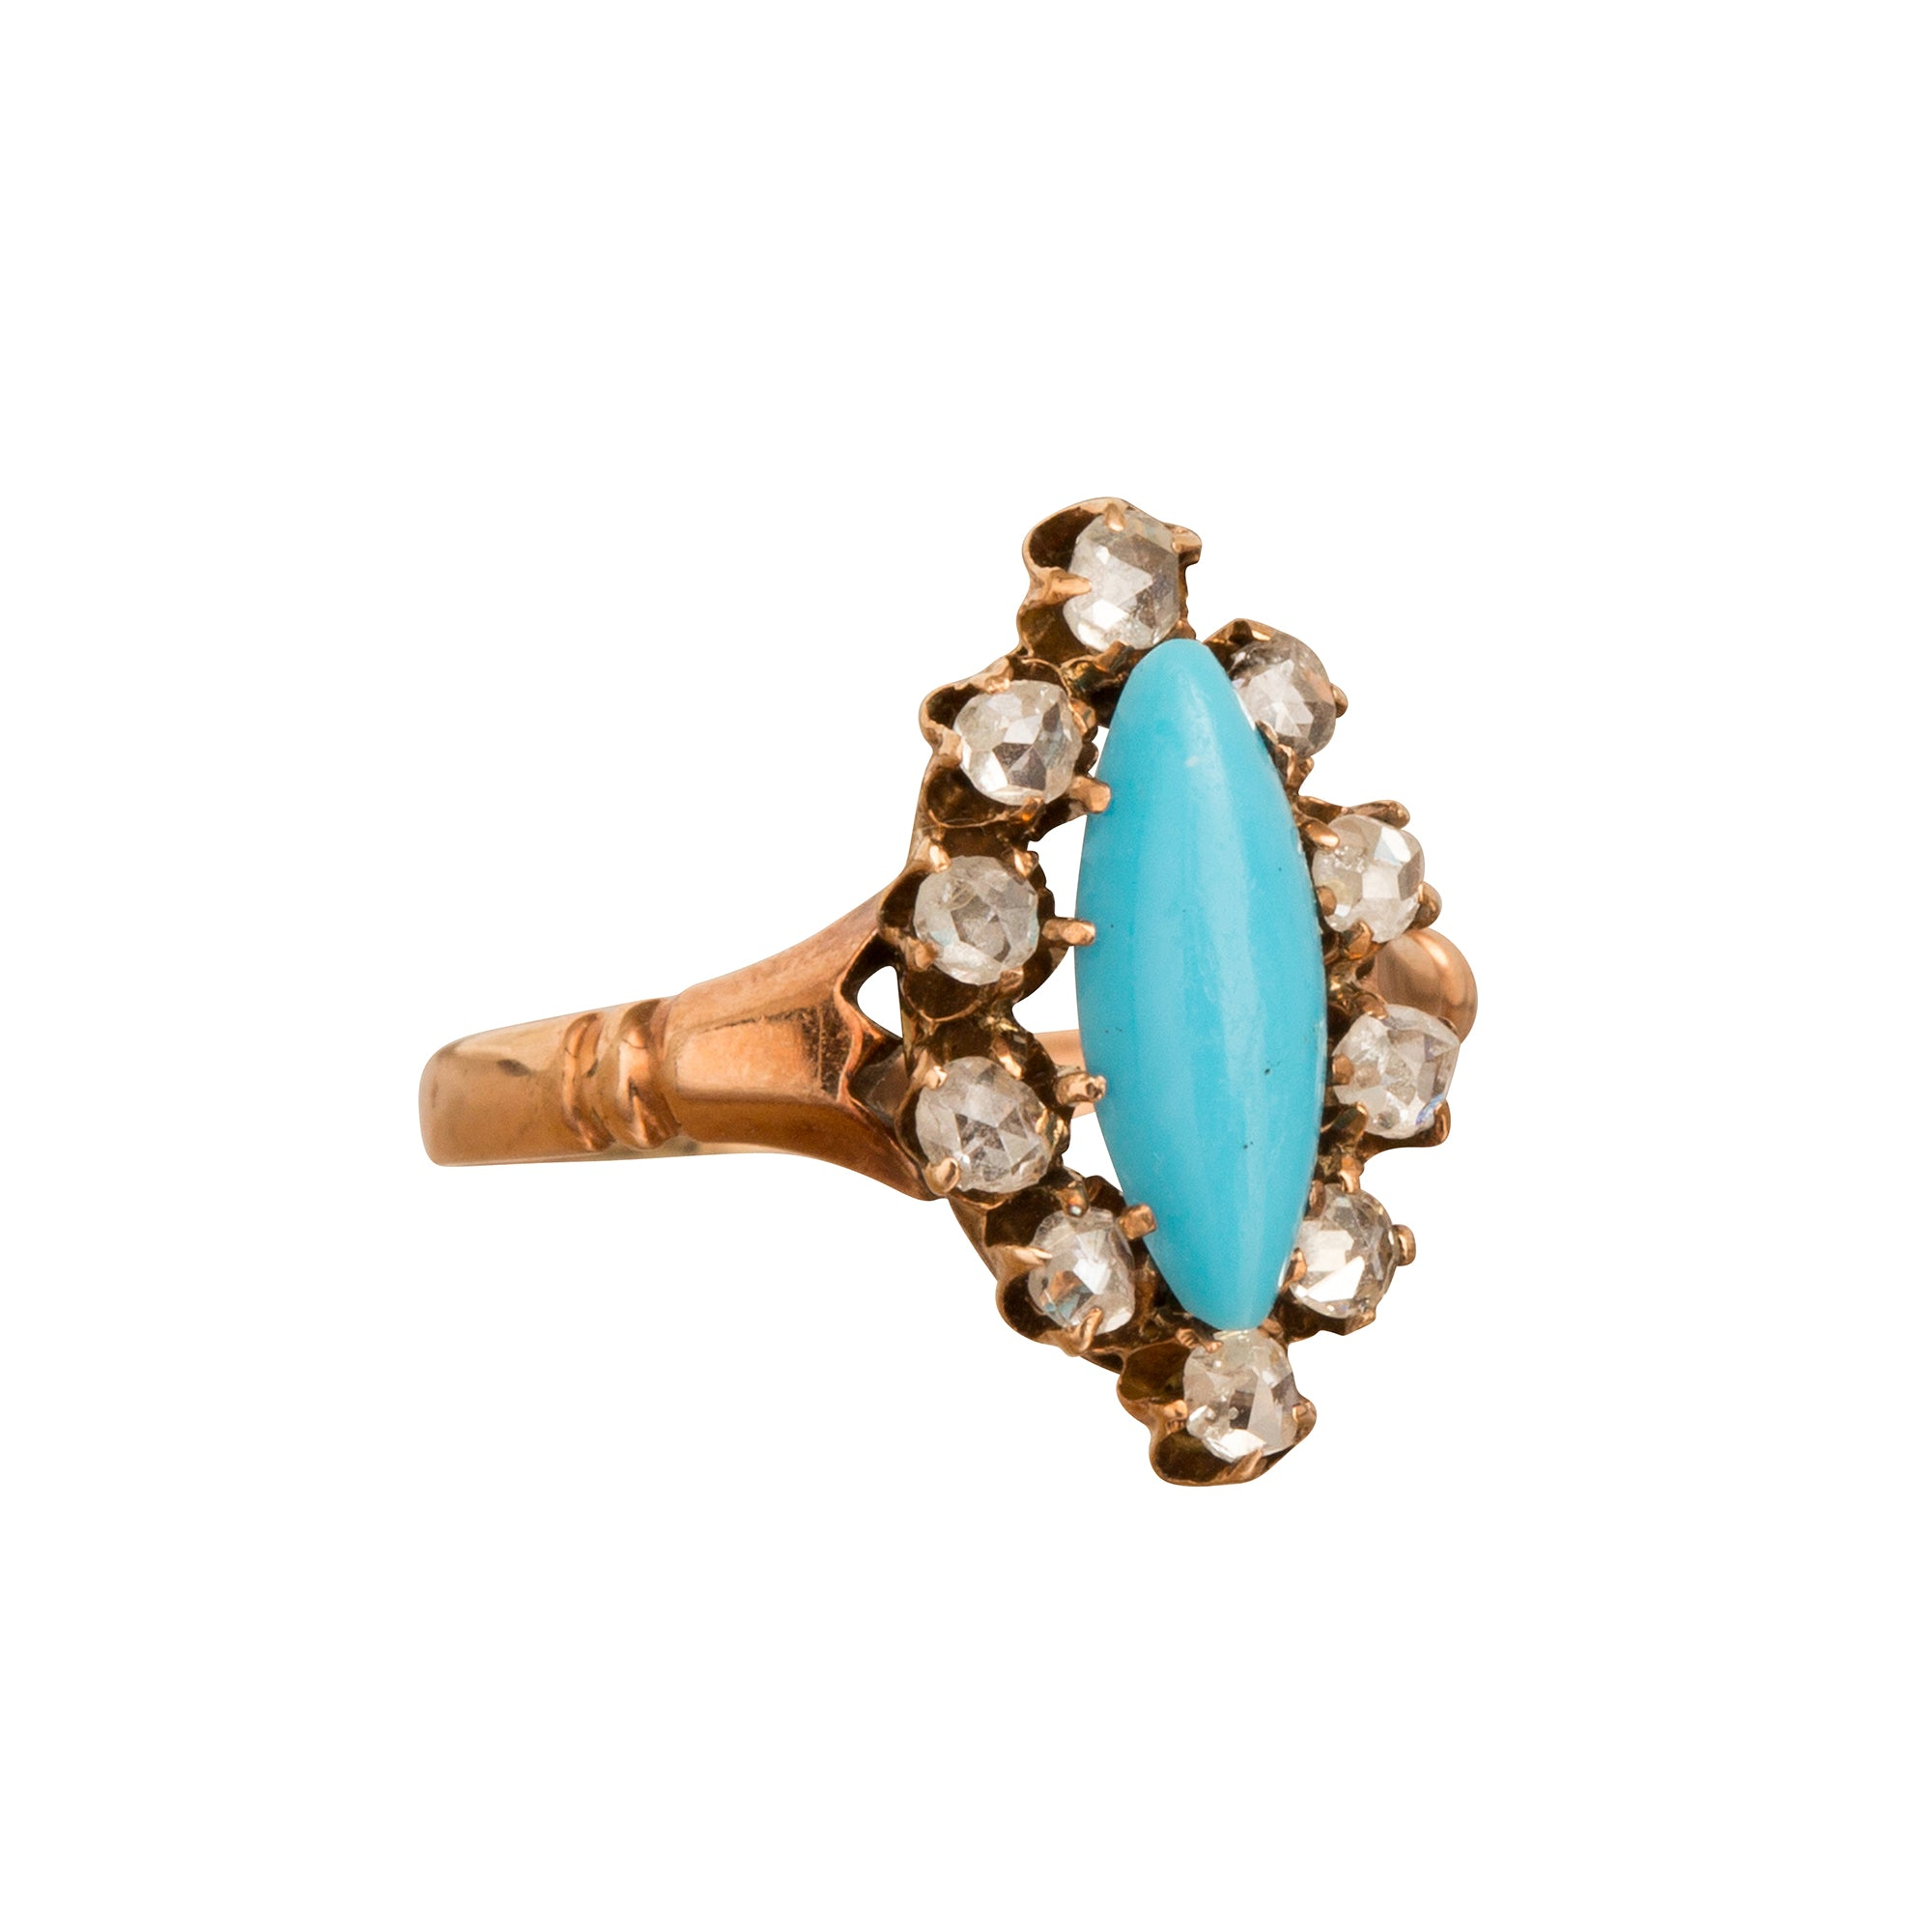 Turquoise & Diamond Navette Ring - Broken English Jewelry